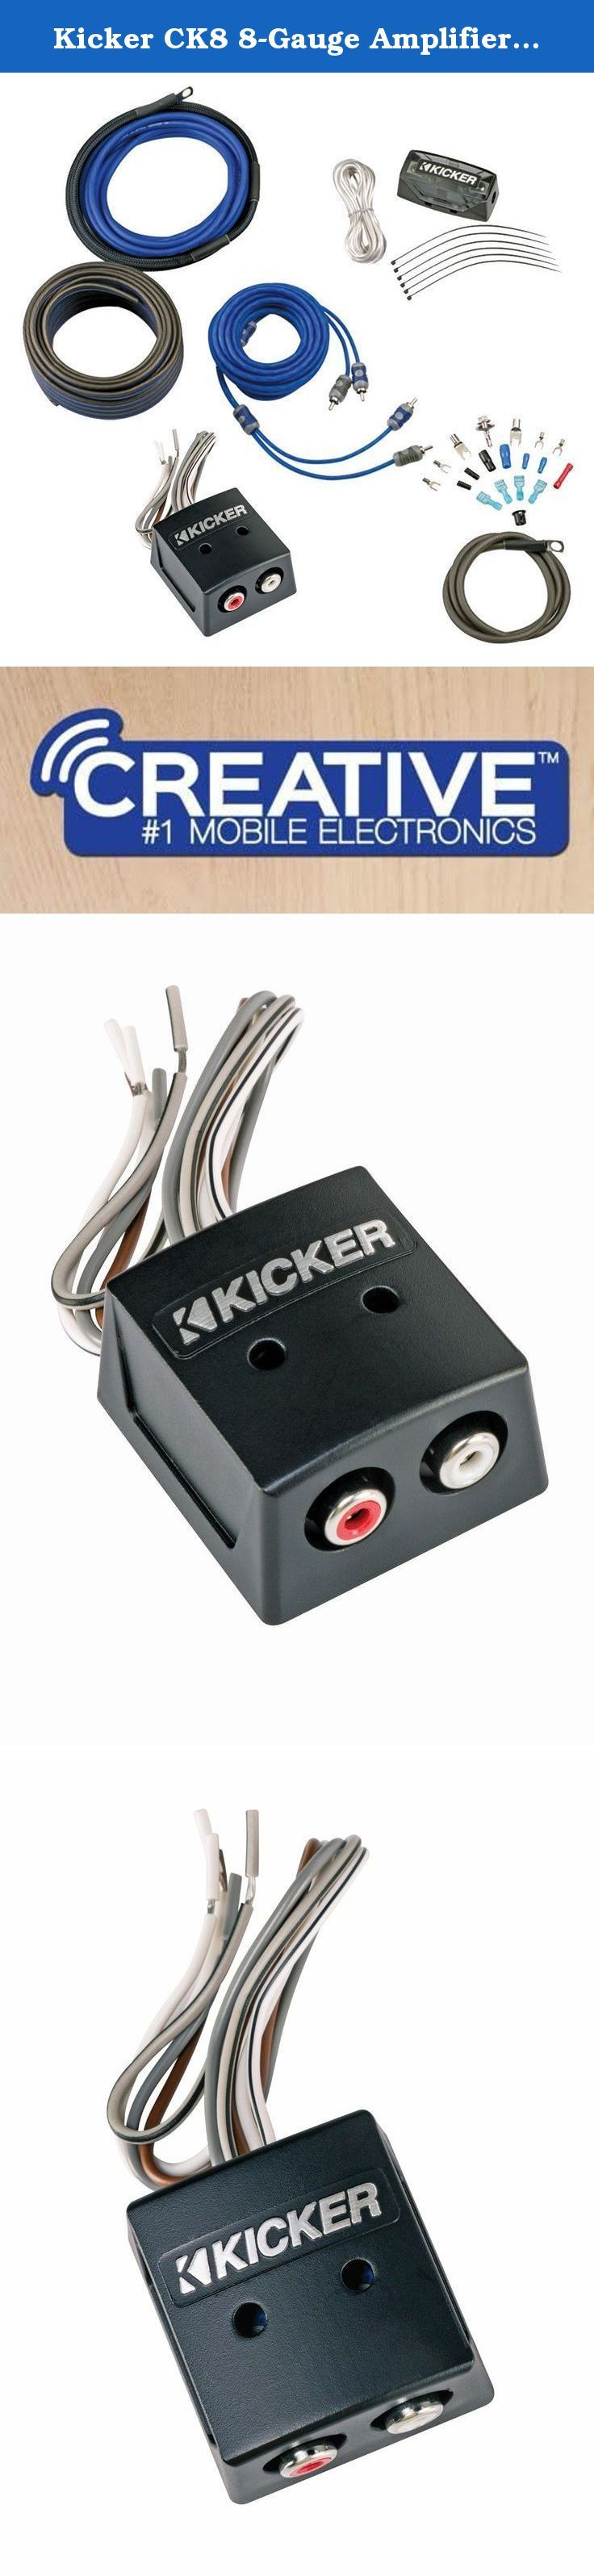 With Battery Wiring Diagram Verado Kicker Kisloc 97 Best Amplifiers Car Audio Electronics 6 Vehicle Rh